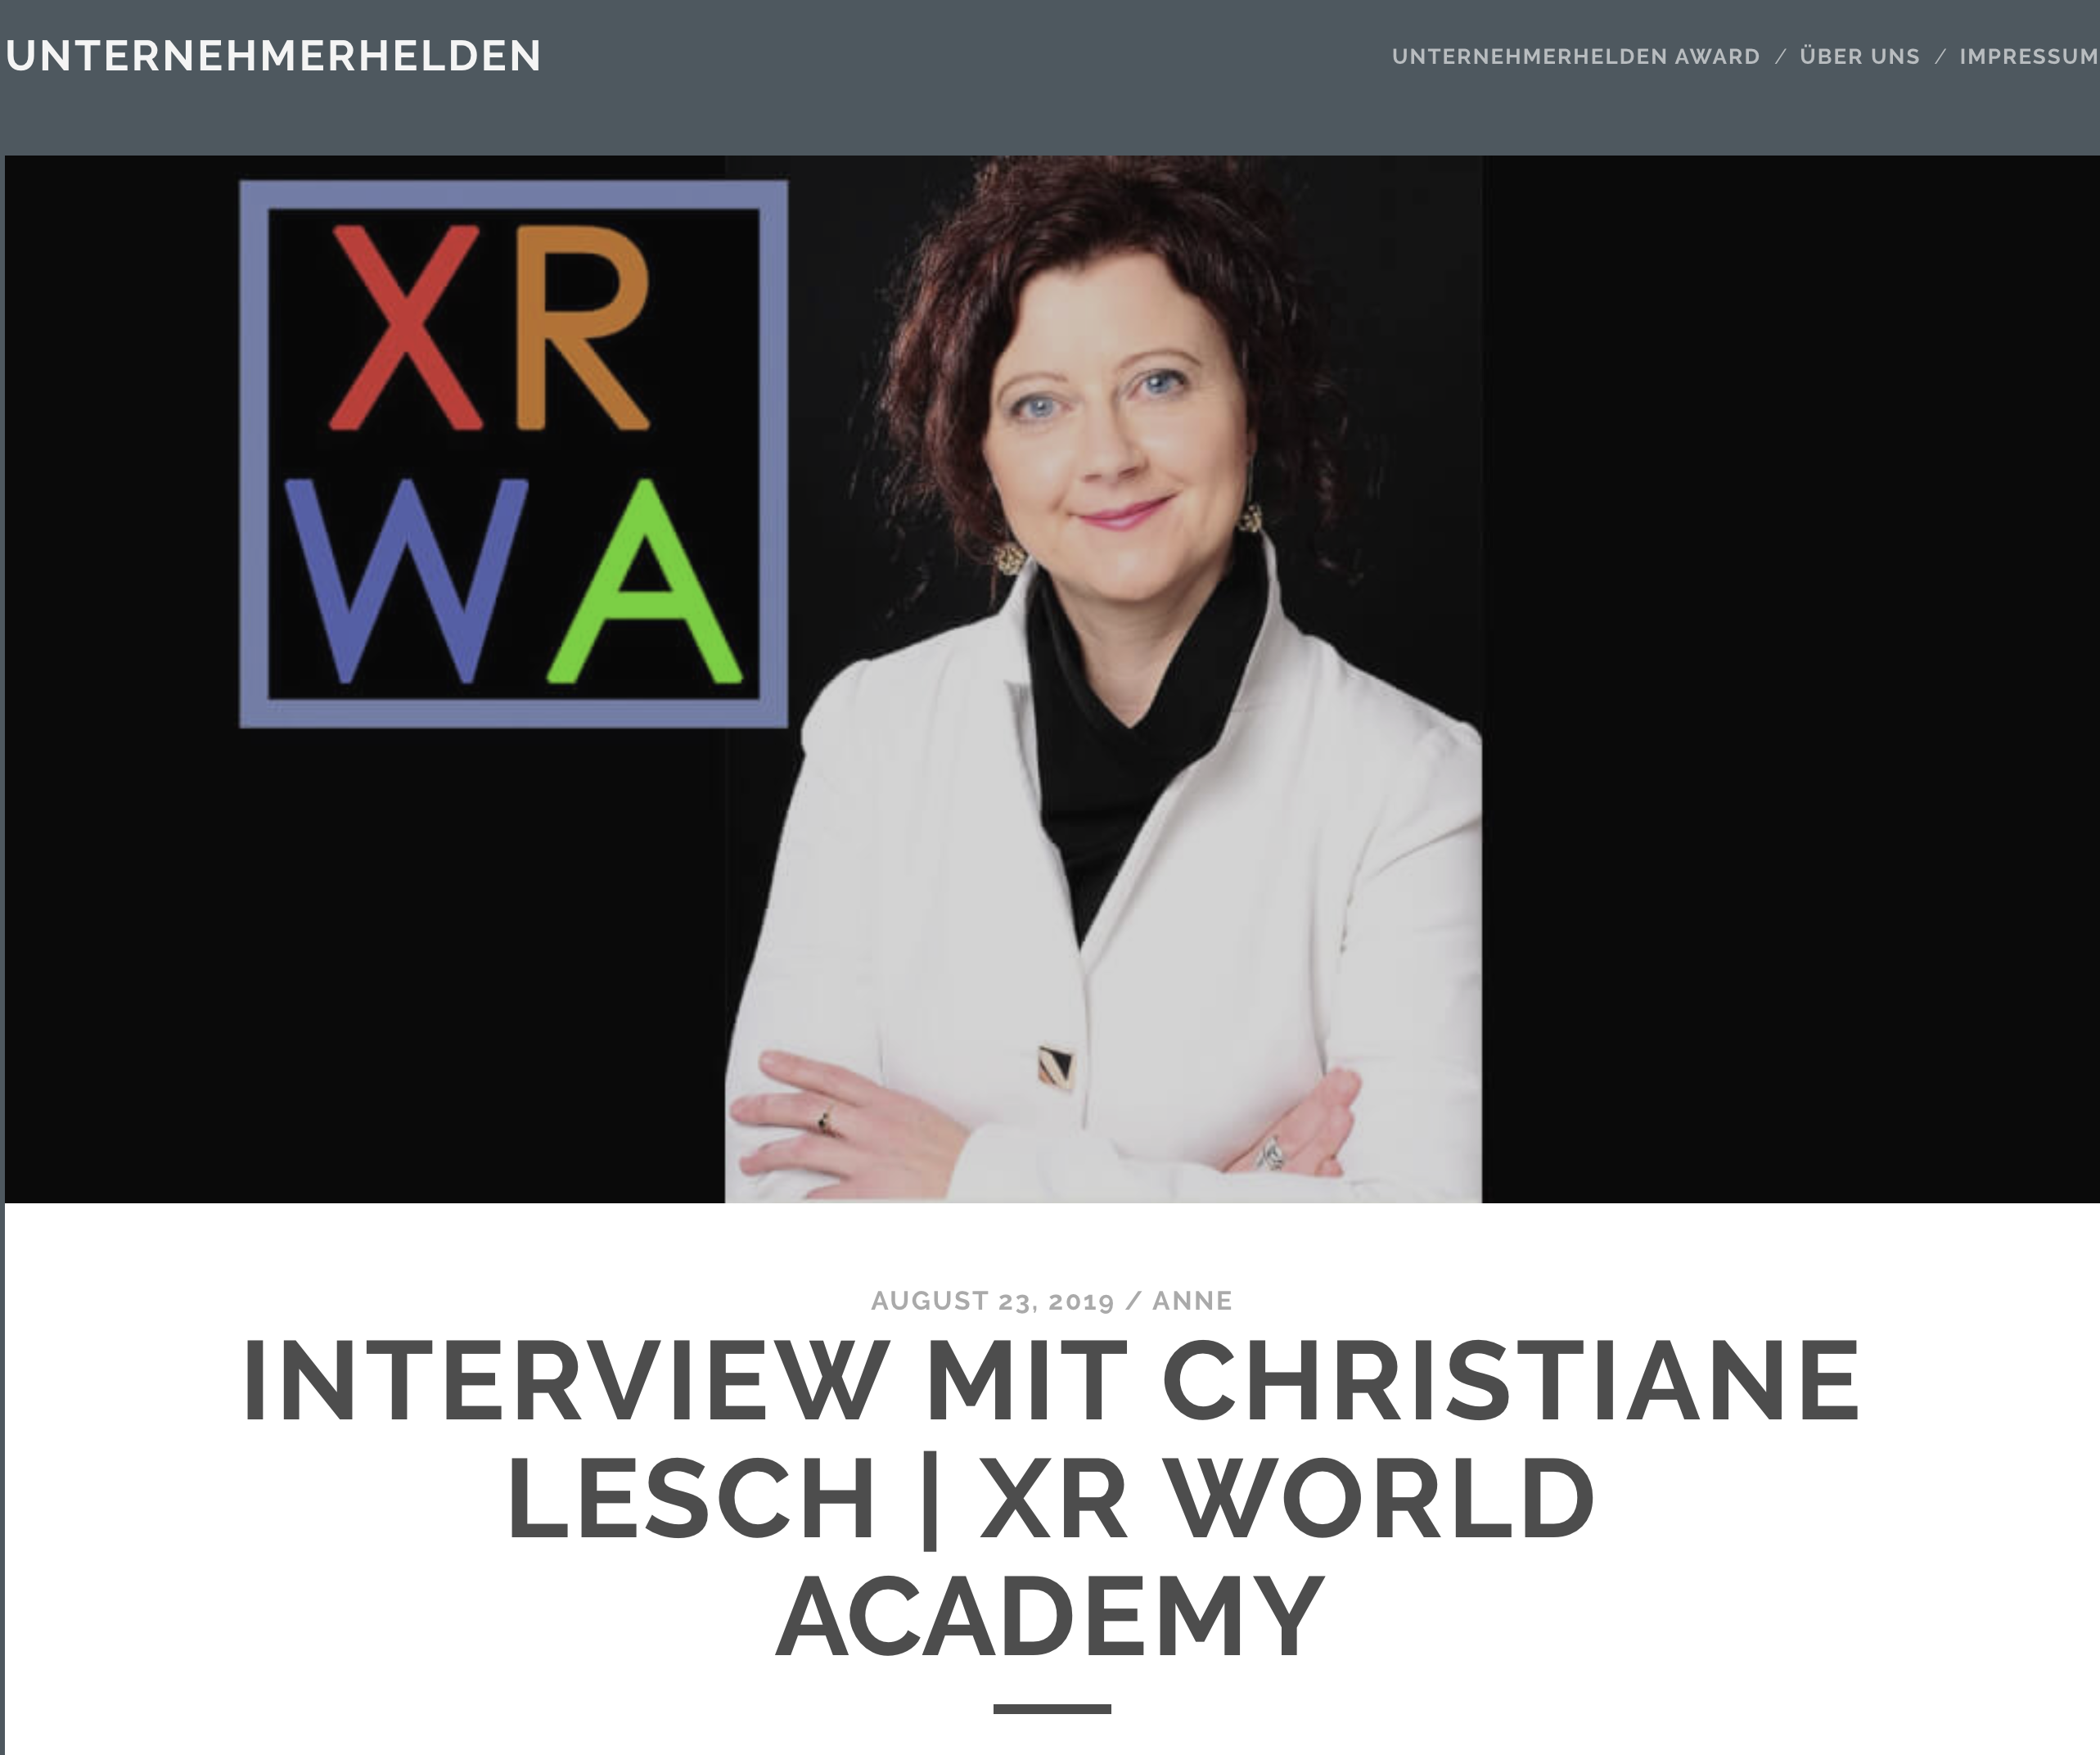 Interview Christiane Lesch XR WORLD ACADEMY on the nomination as founder hero